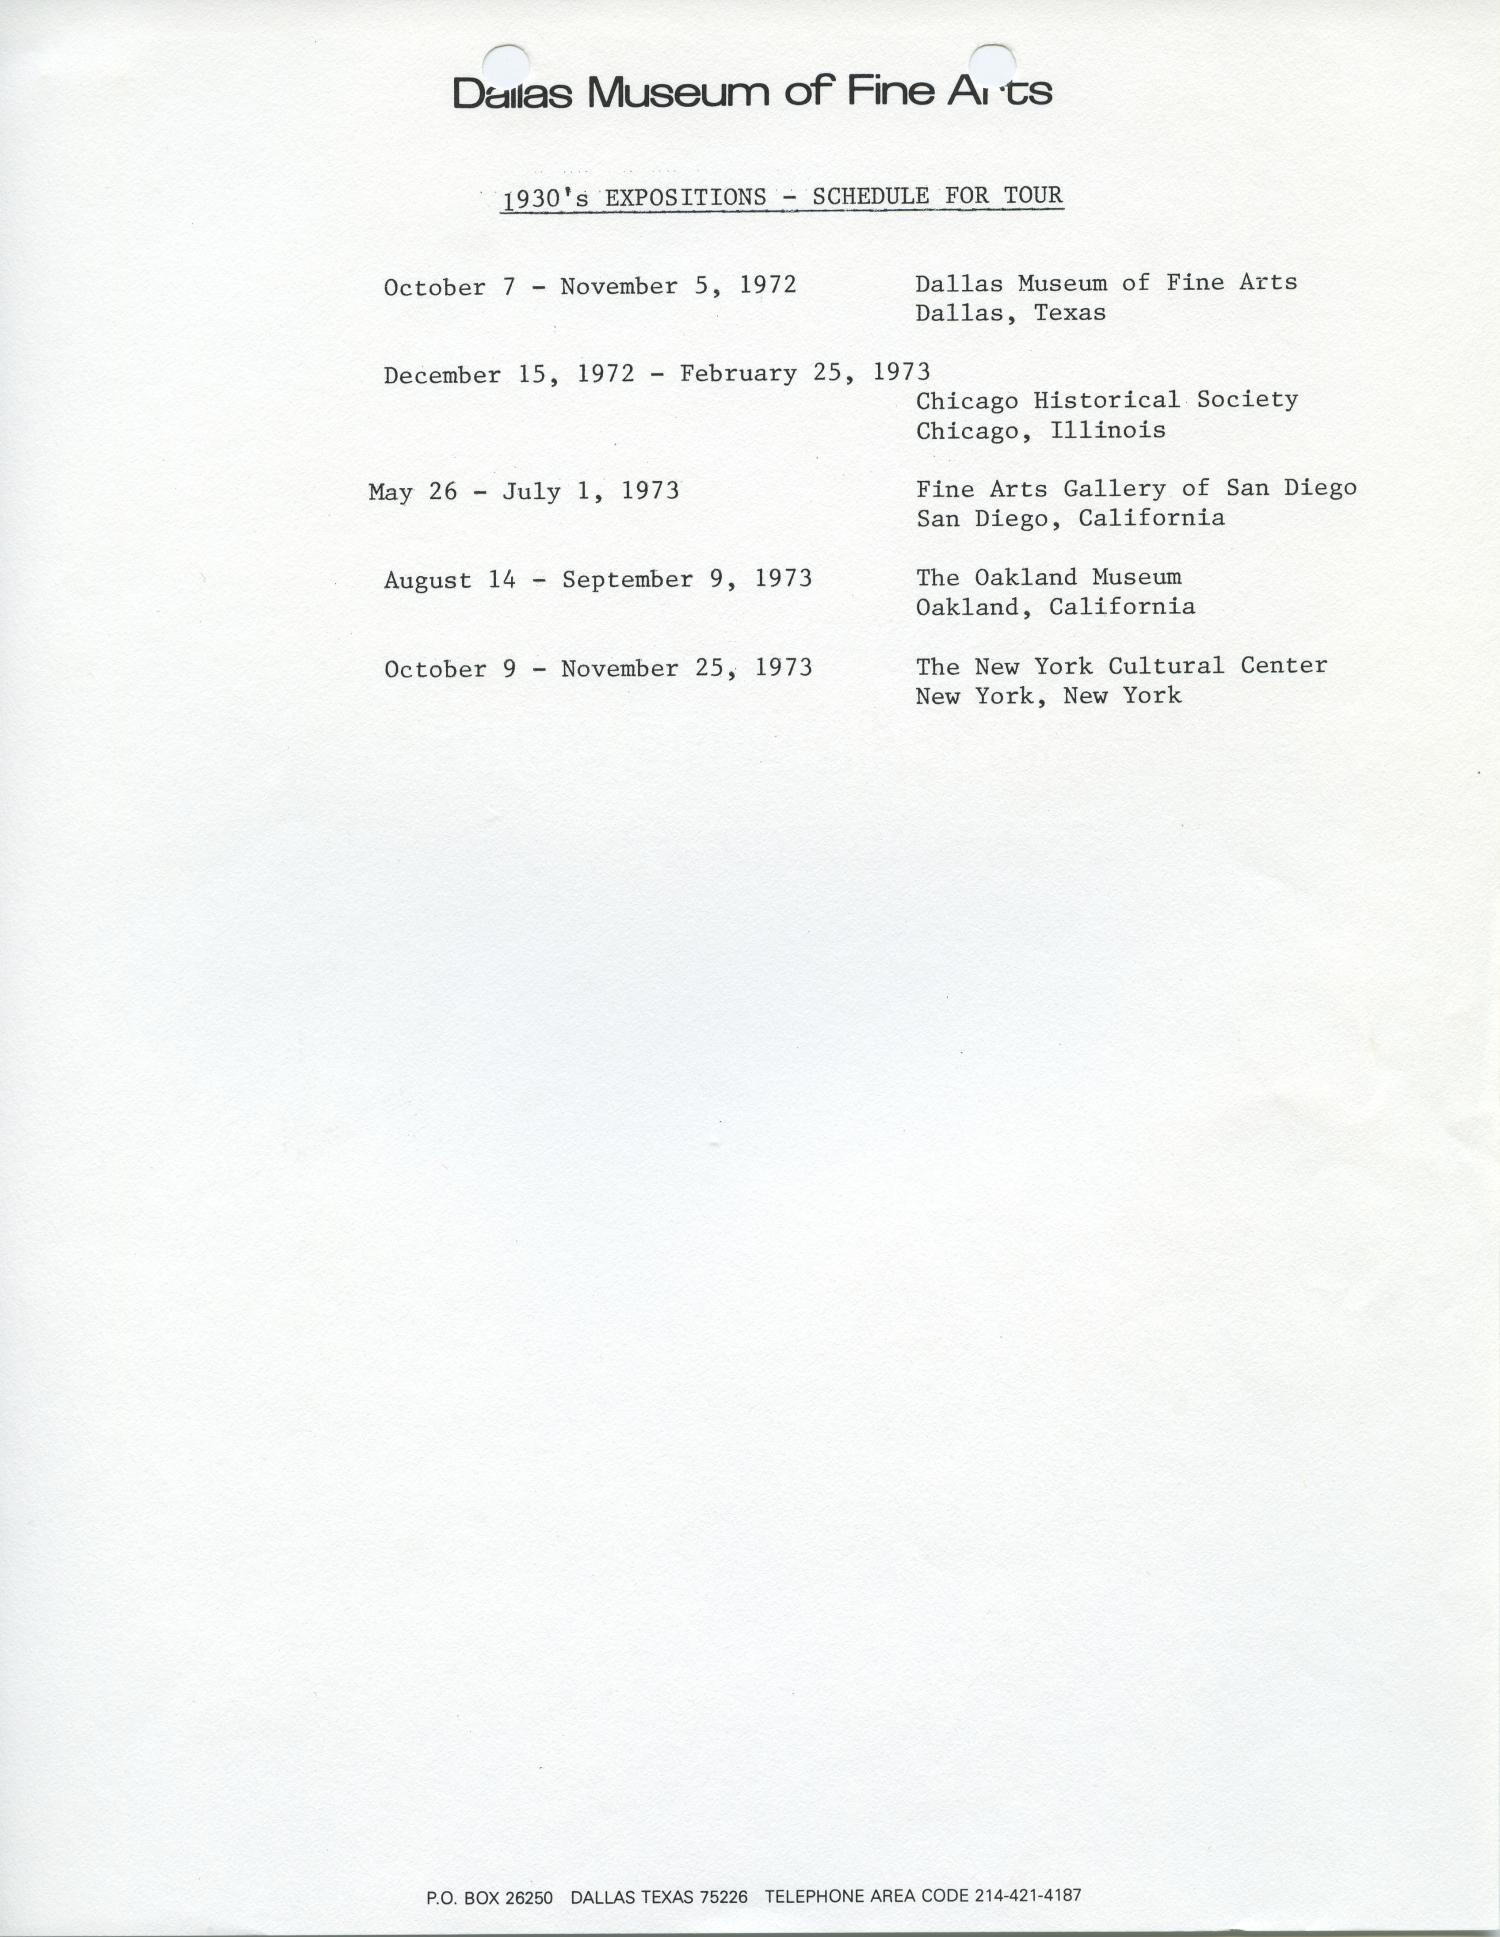 1930's Expositions - Schedule for Tour [Tour Schedule]                                                                                                      [Sequence #]: 1 of 1